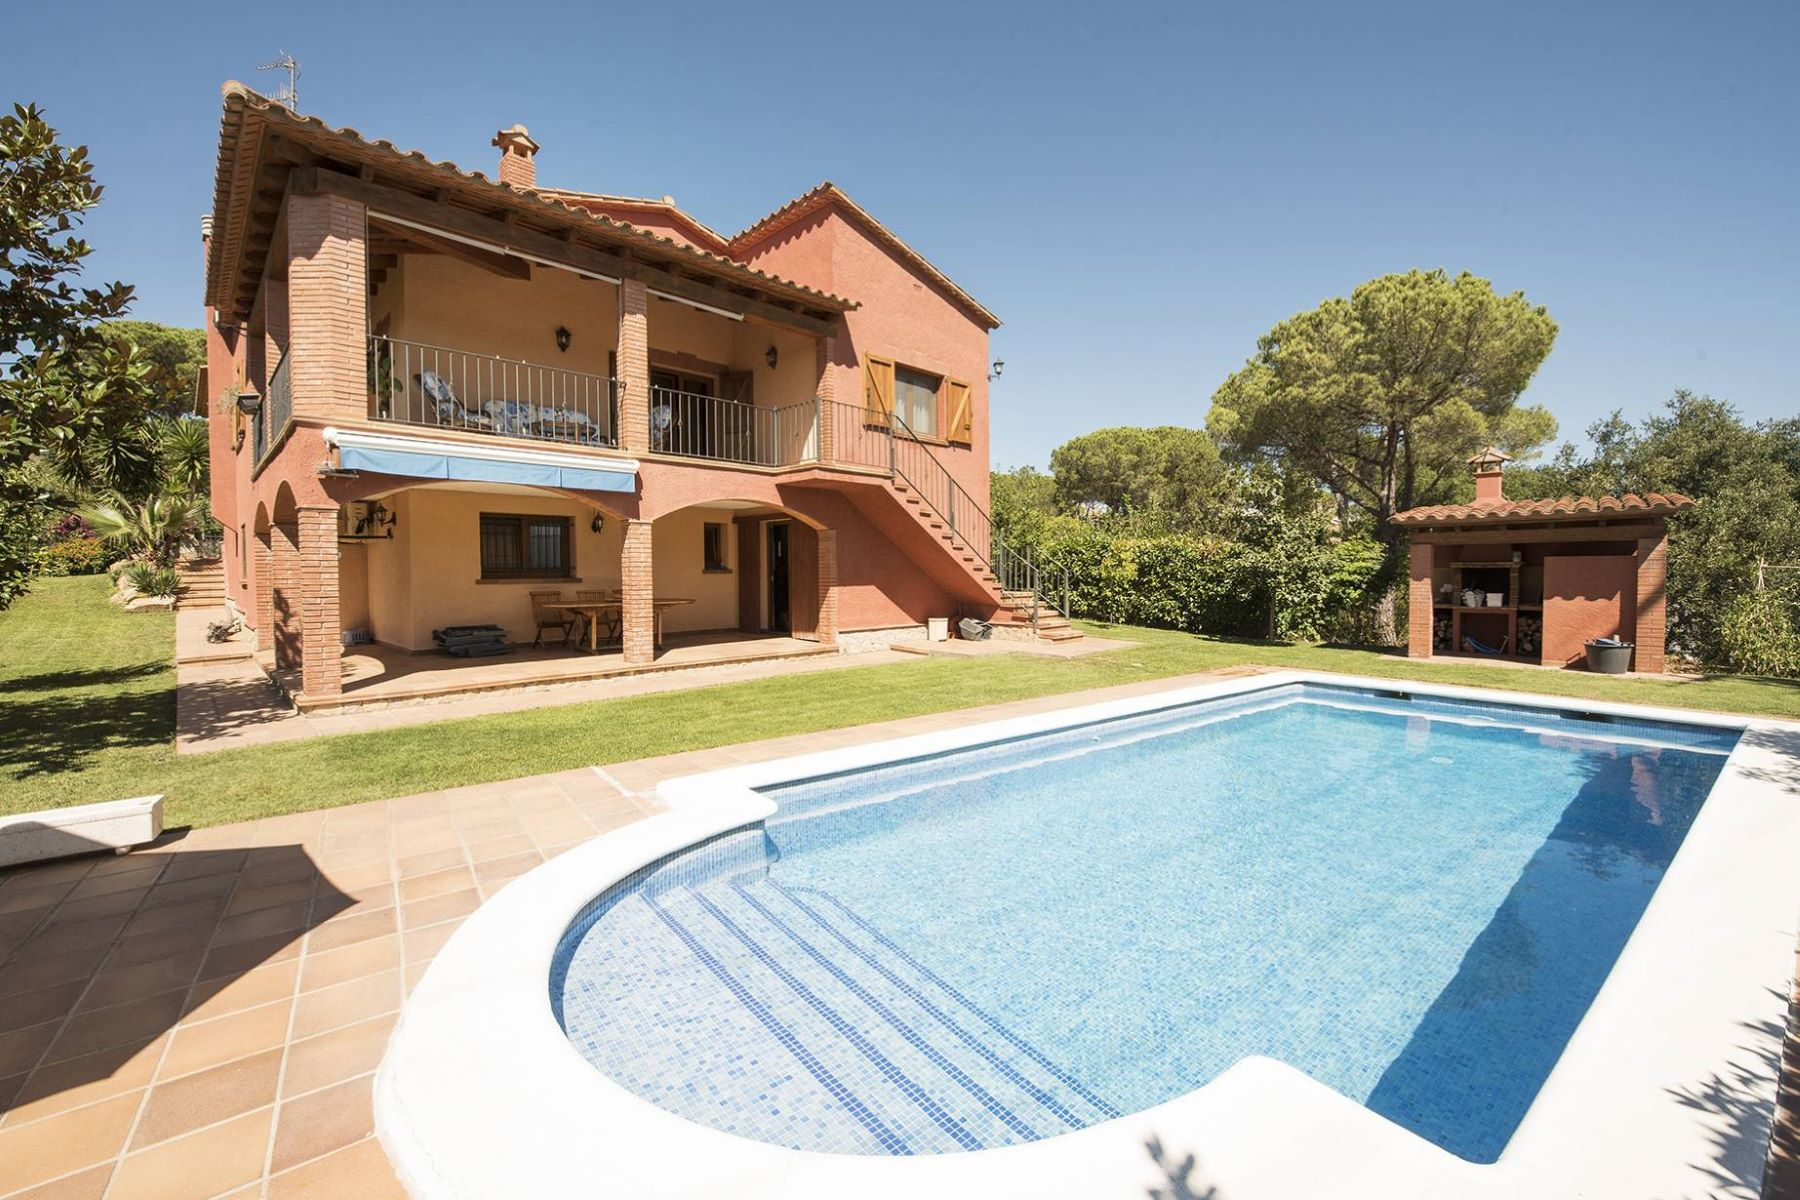 Single Family Home for Sale at Welcoming house in calm area Playa De Aro, Costa Brava, 17250 Spain